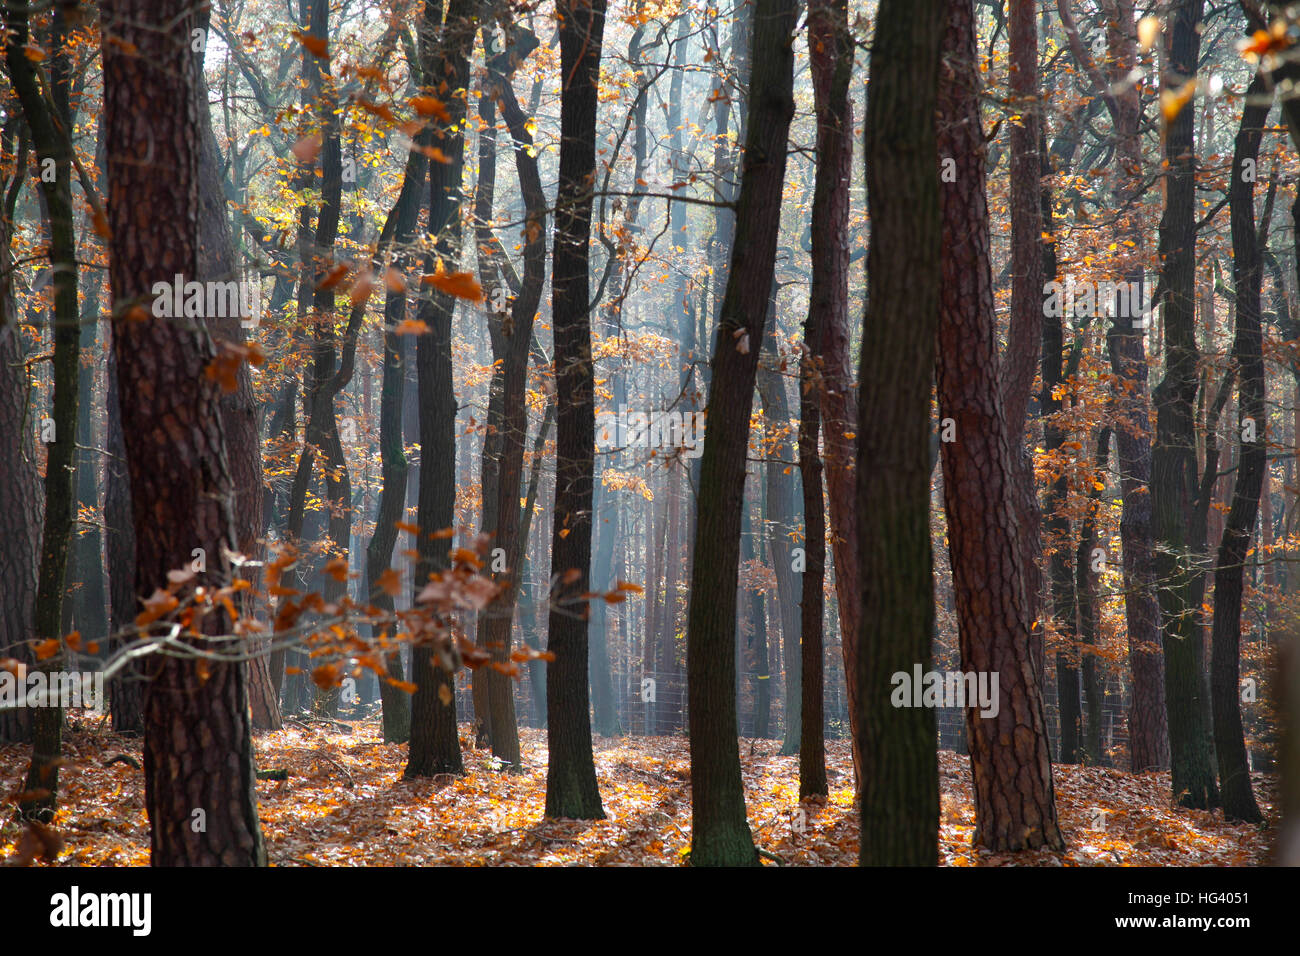 Trees in the forest in Autumn. - Stock Image